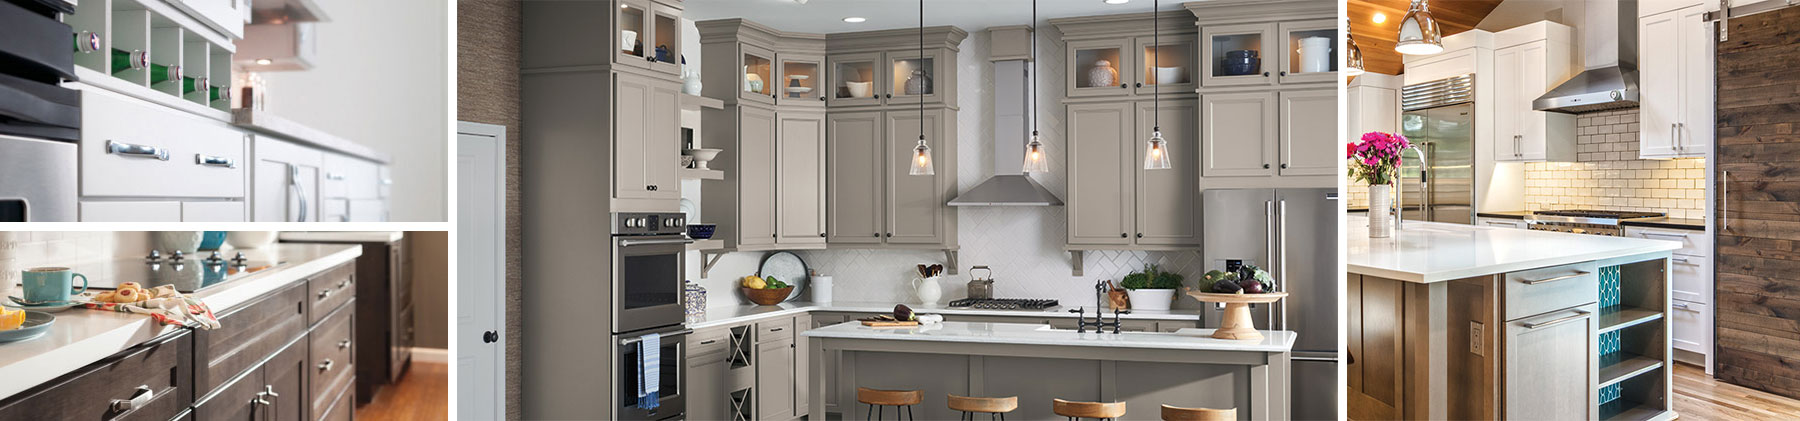 Northwest Home Gallery Appliance Cabinets Flooring Plumbing In